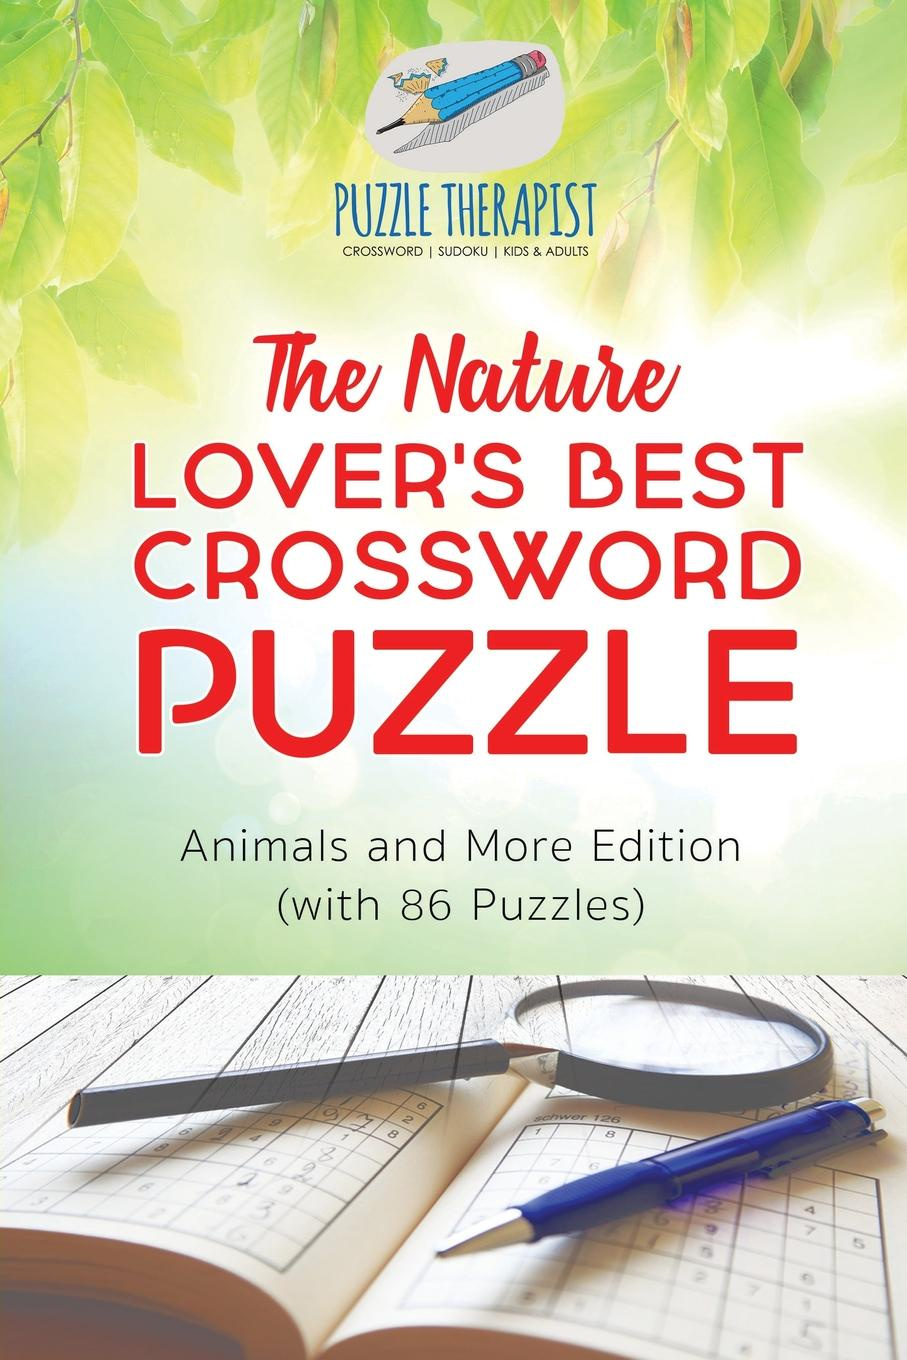 Puzzle Therapist The Nature Lover's Best Crossword Puzzle . Animals and More Edition (with 86 Puzzles) hooked rugs today strong women flowers animals children christmas miniatures and more 2006